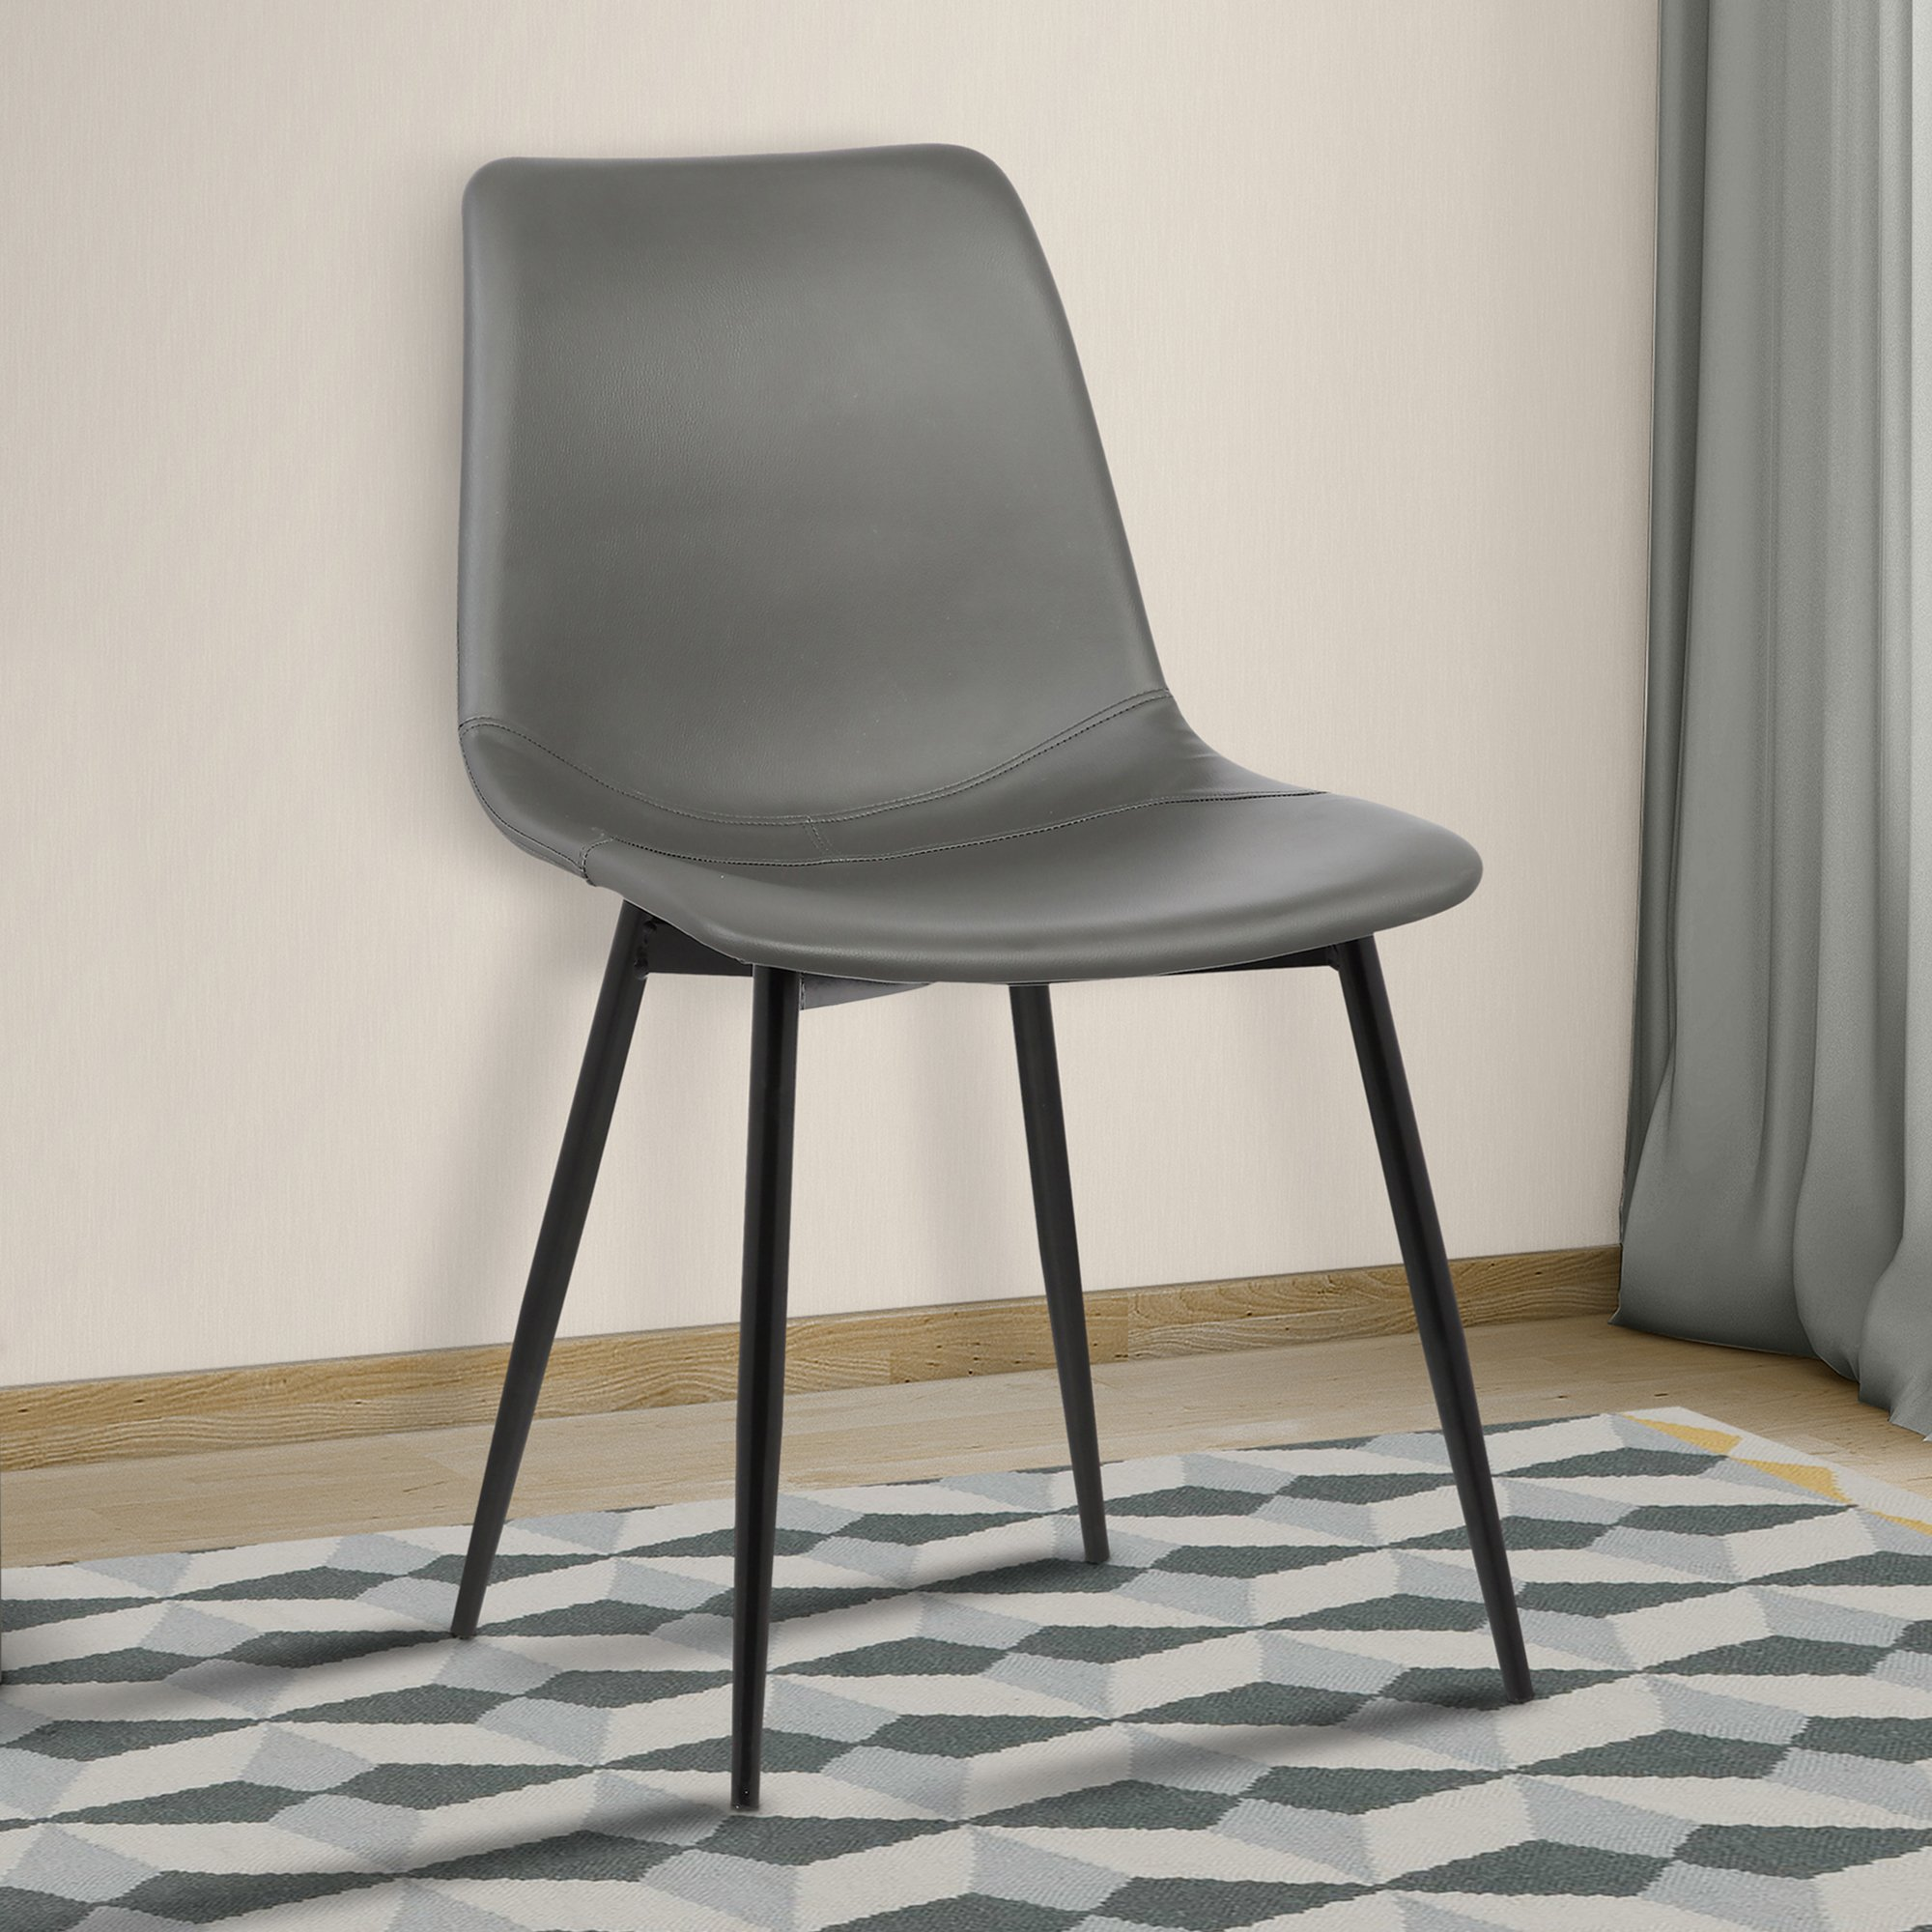 Armen Living LCMOCHGREY Monte Dining Chair in Grey Faux Leather and Auburn Bay Finish by Armen Living